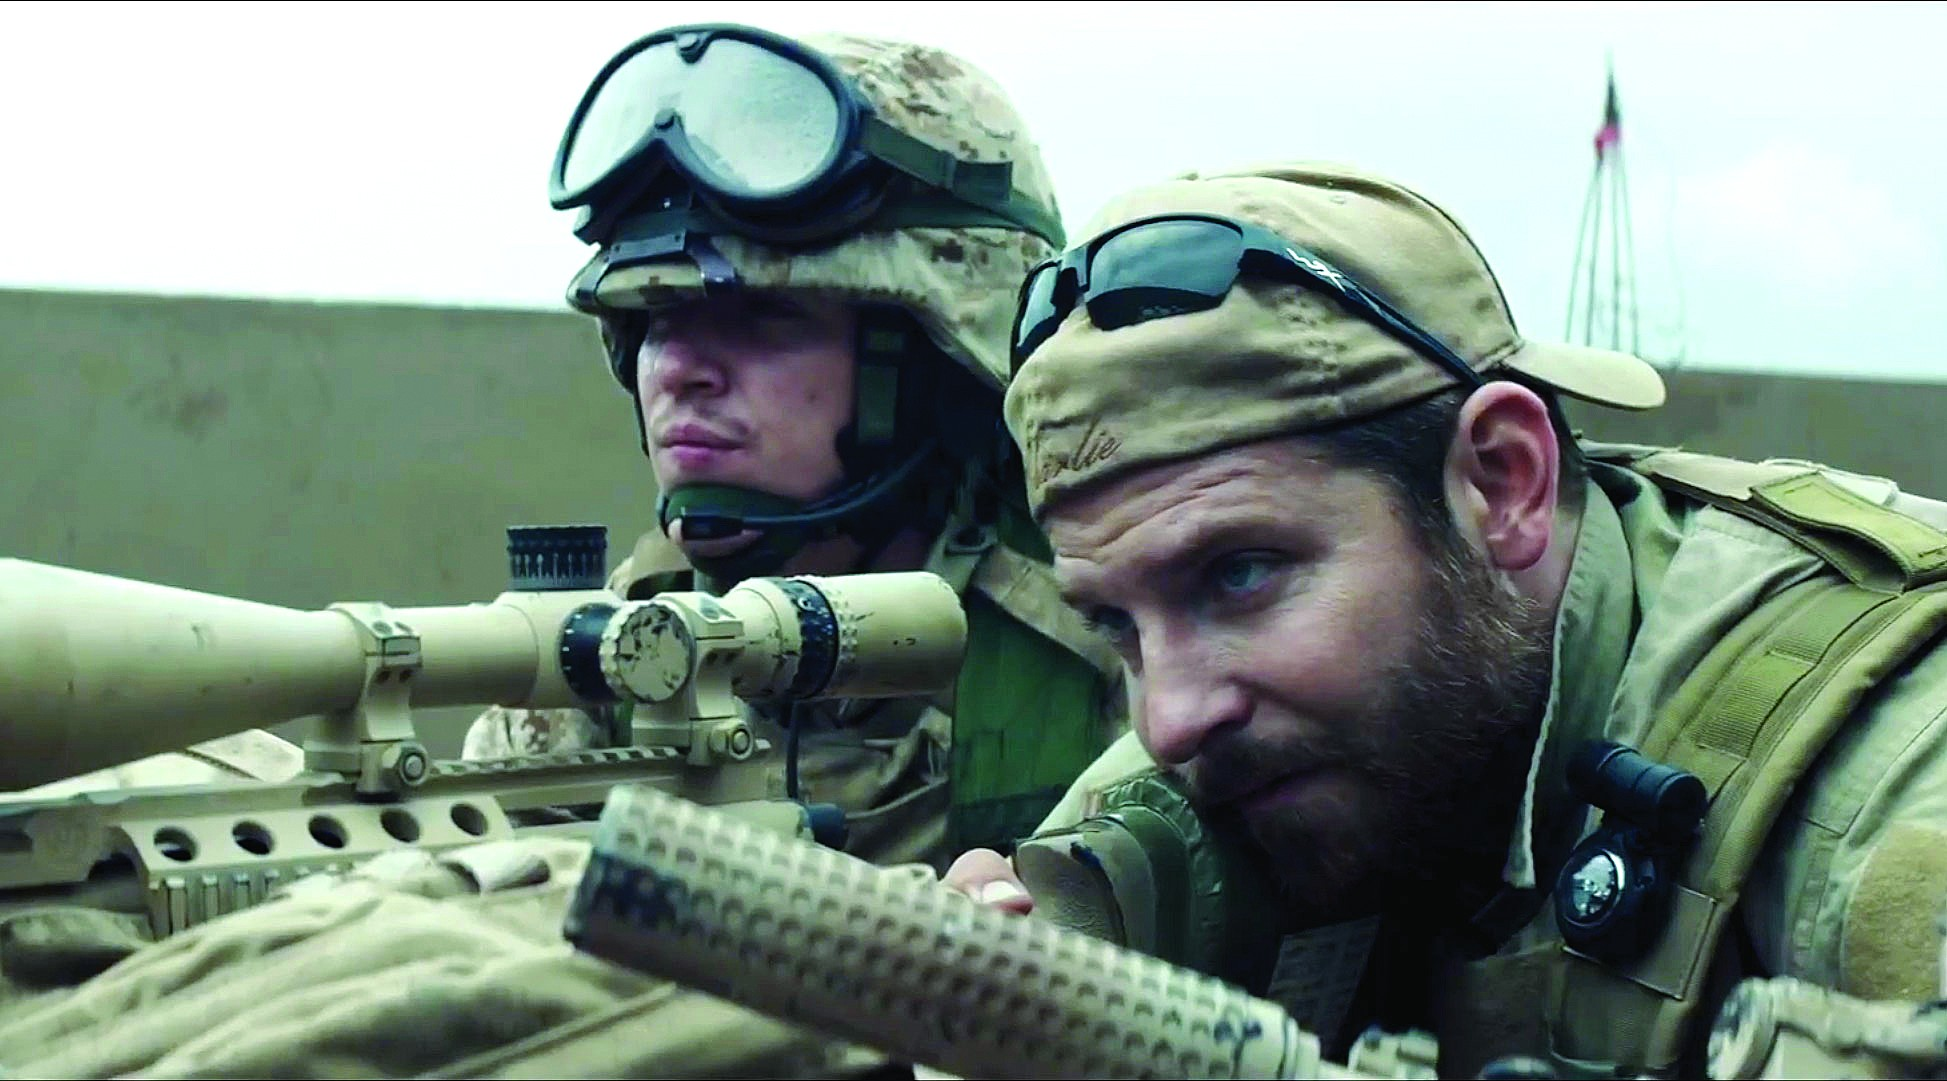 With 'American Sniper,' Clint Eastwood may as well be